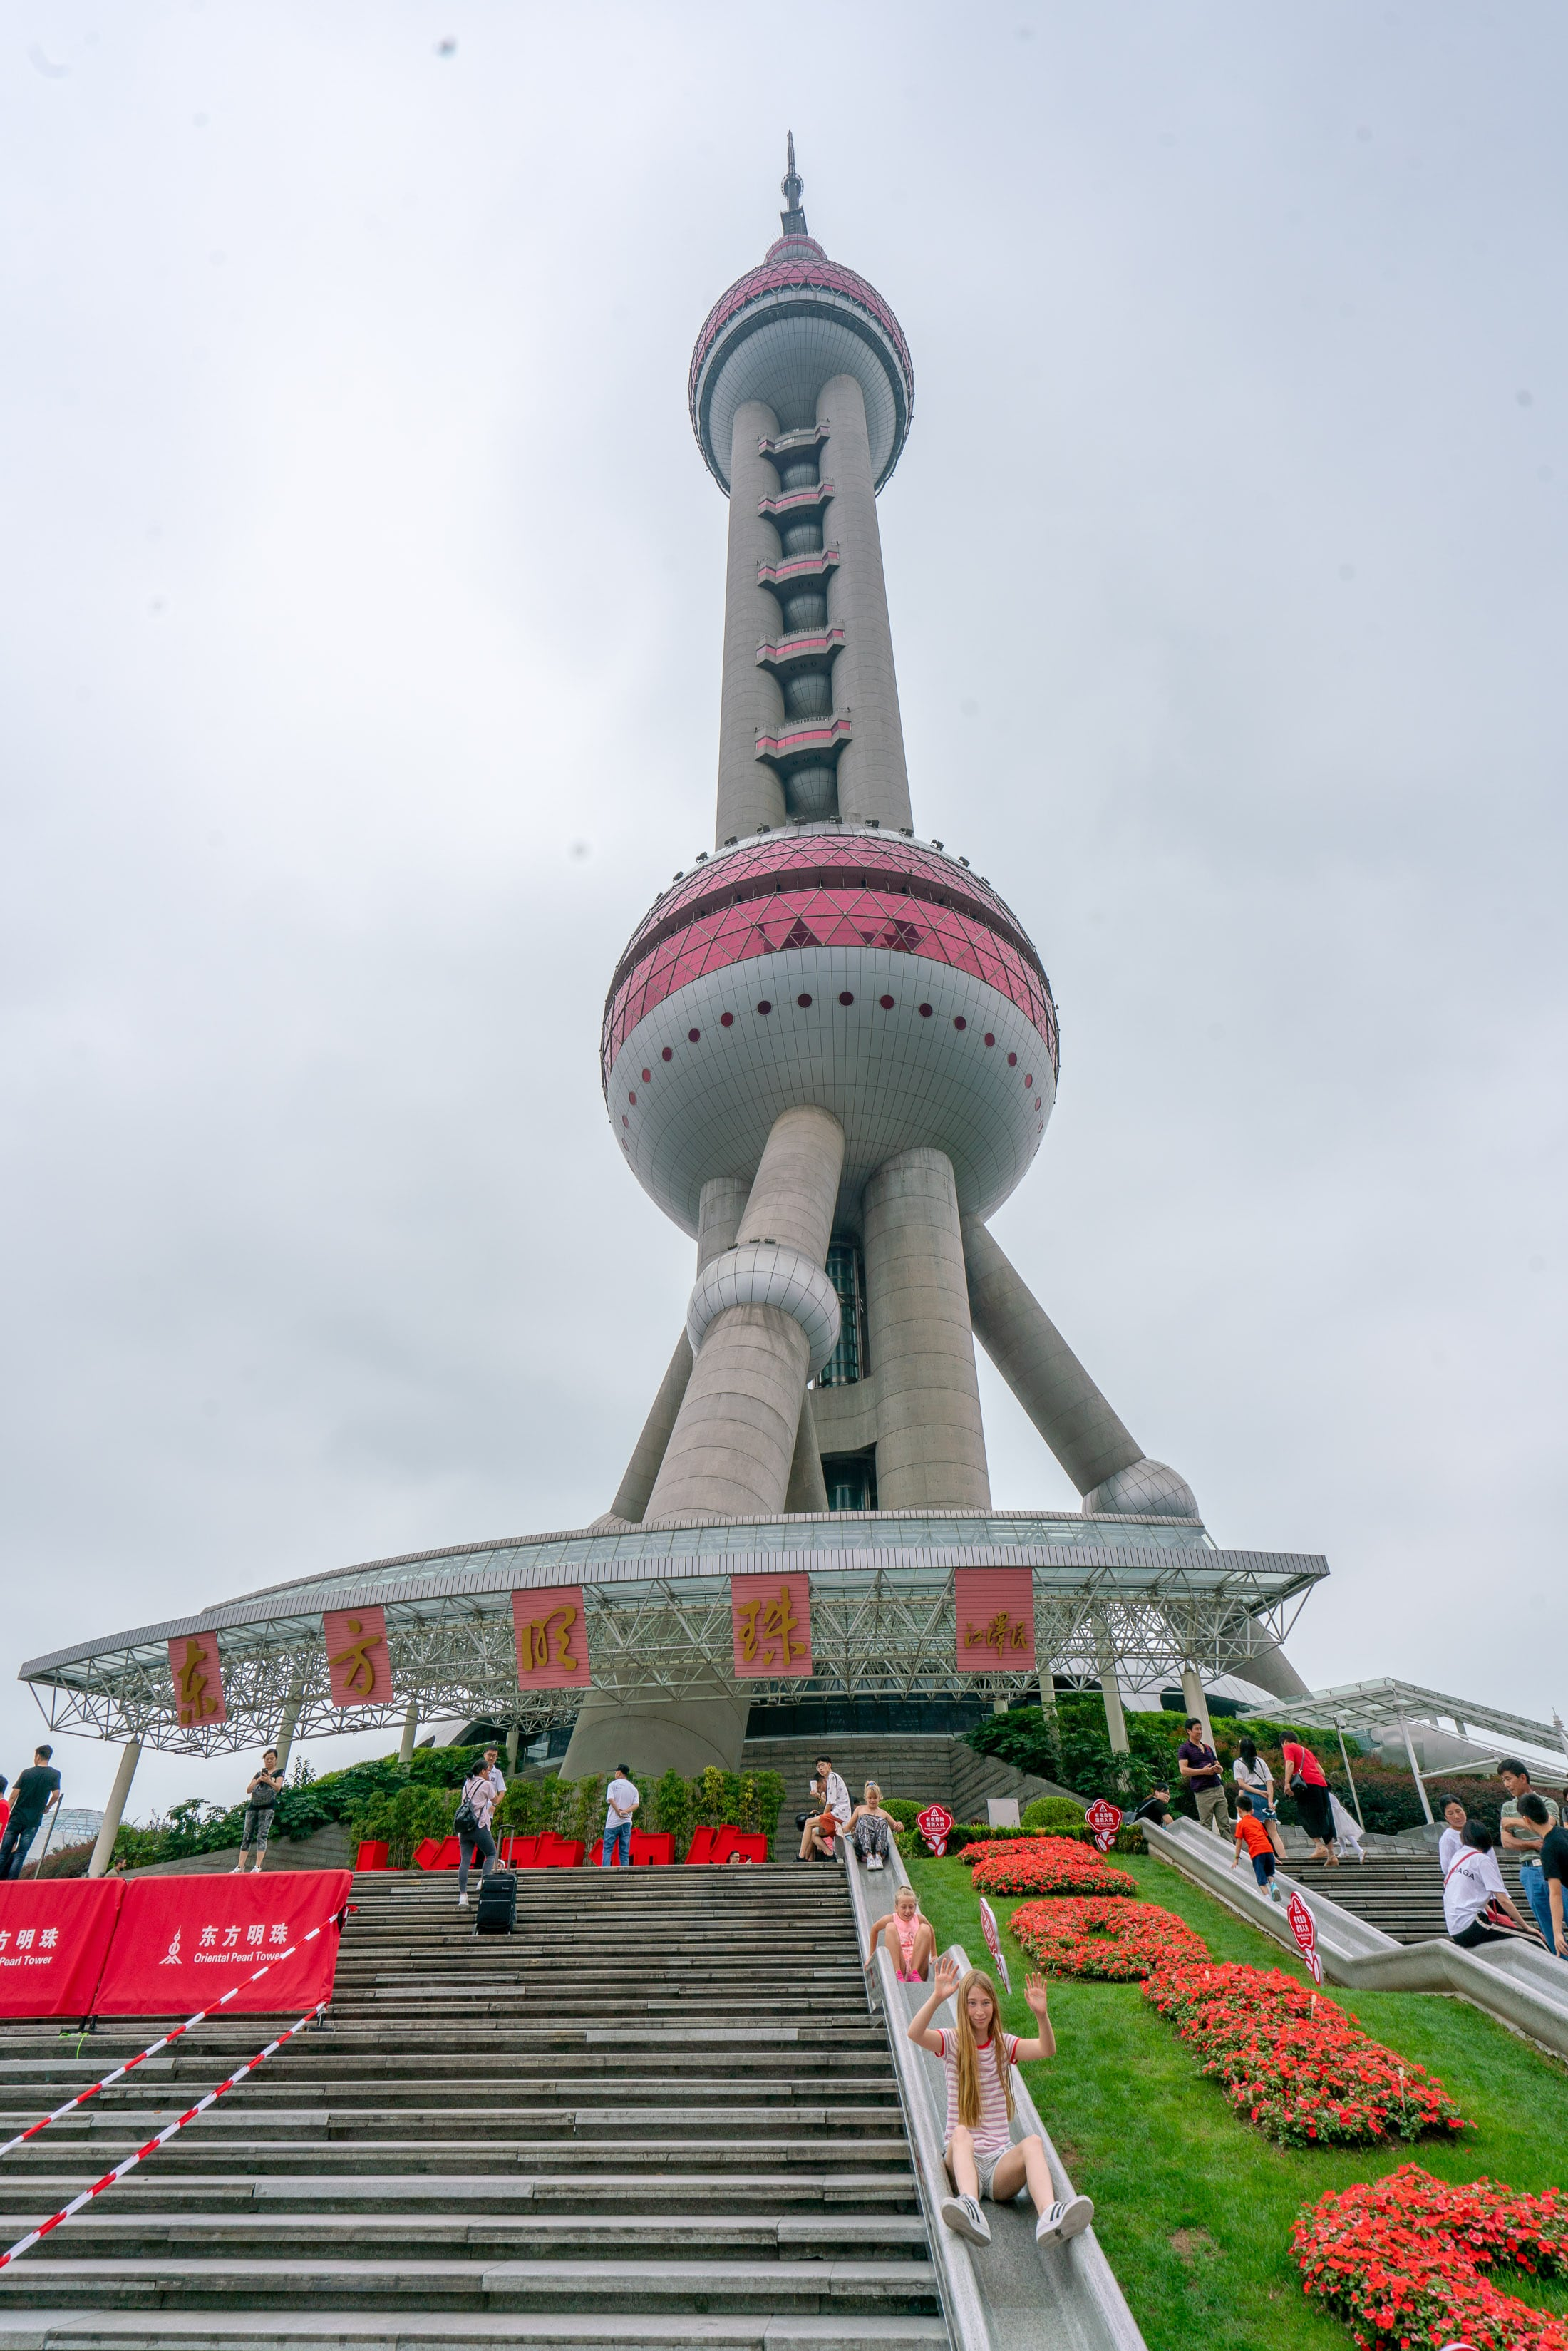 Things to do in Shanghai: Visit the Oriental Pearl Tower